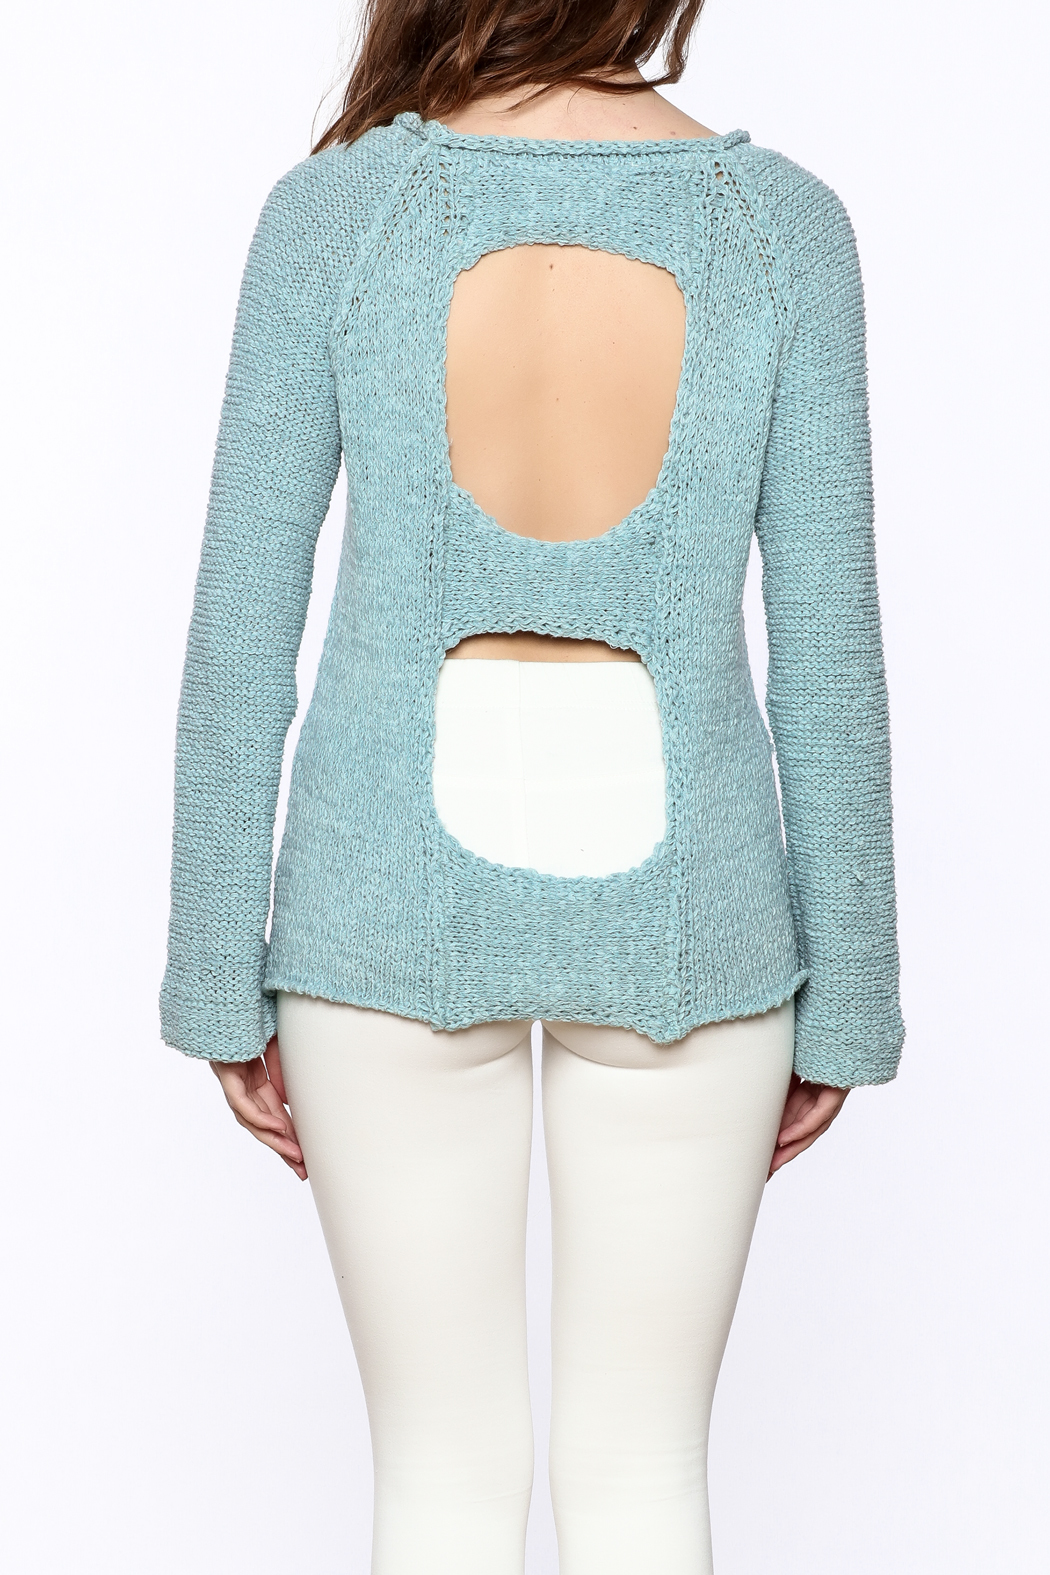 cb487530c1765 Elan Open Back Sweater from New York by Dor L Dor — Shoptiques